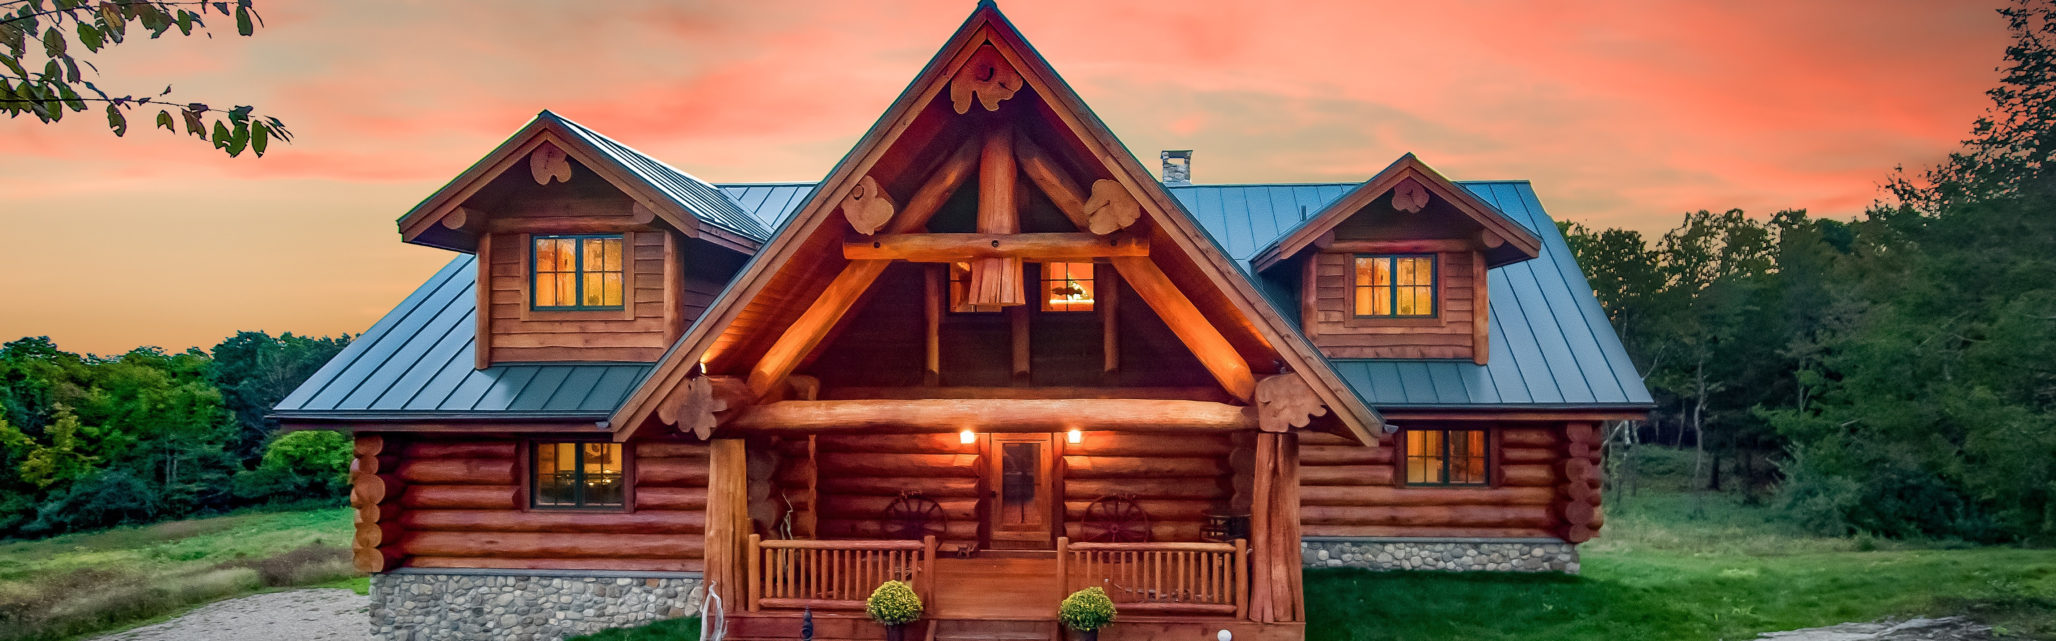 what's included in my log and timber frame home package?